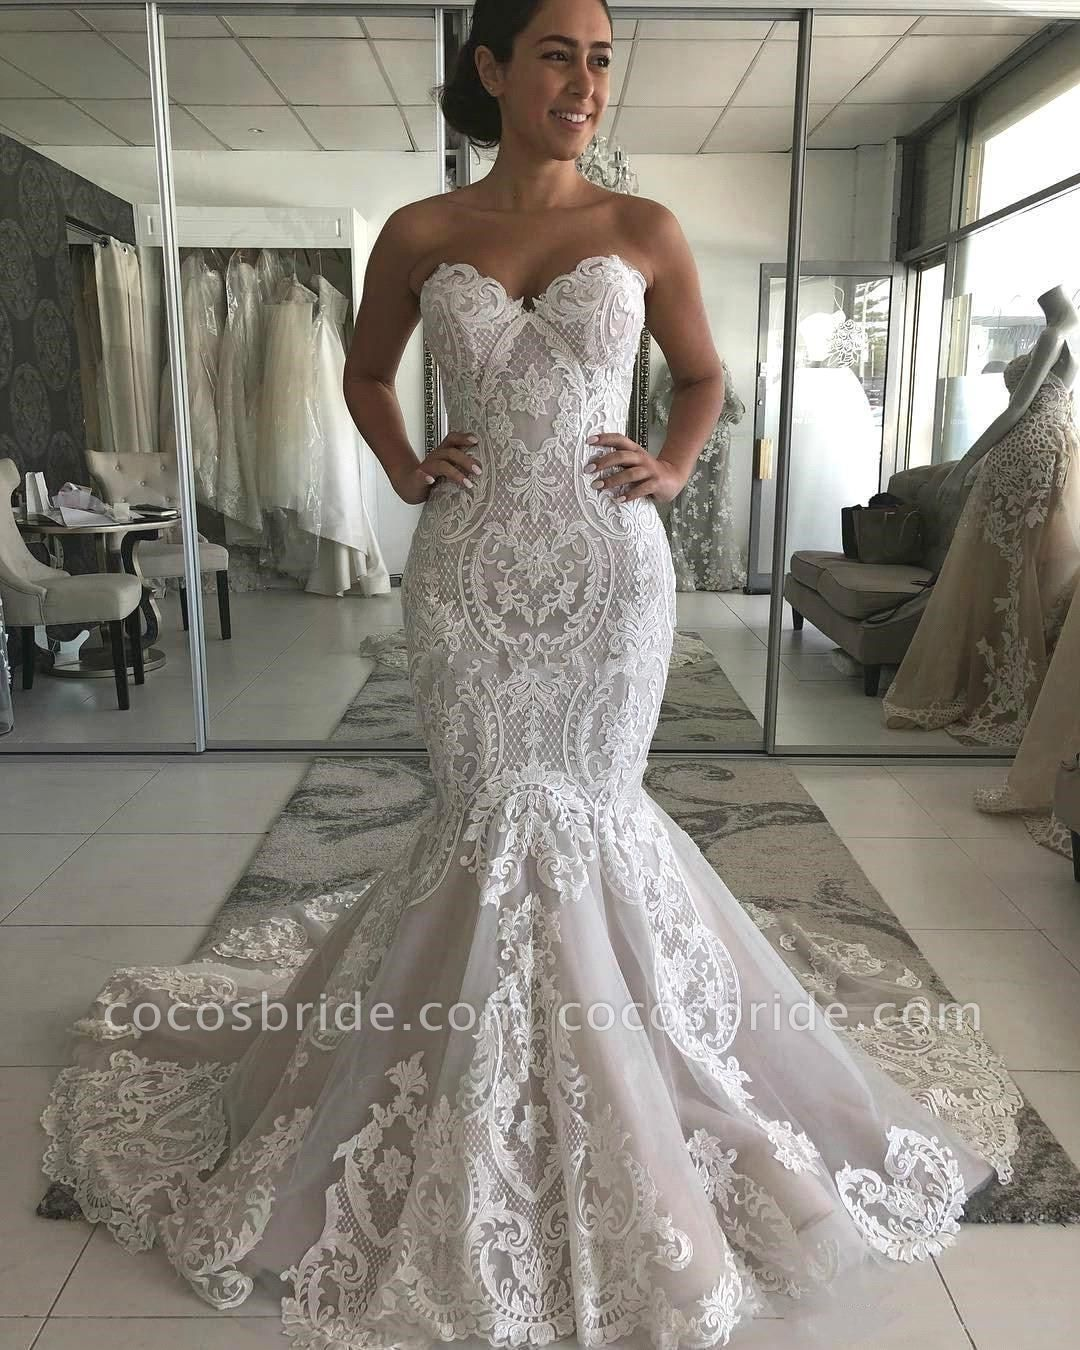 Pin On Wedding Party Dresses At Cocosbride [ 1350 x 1080 Pixel ]